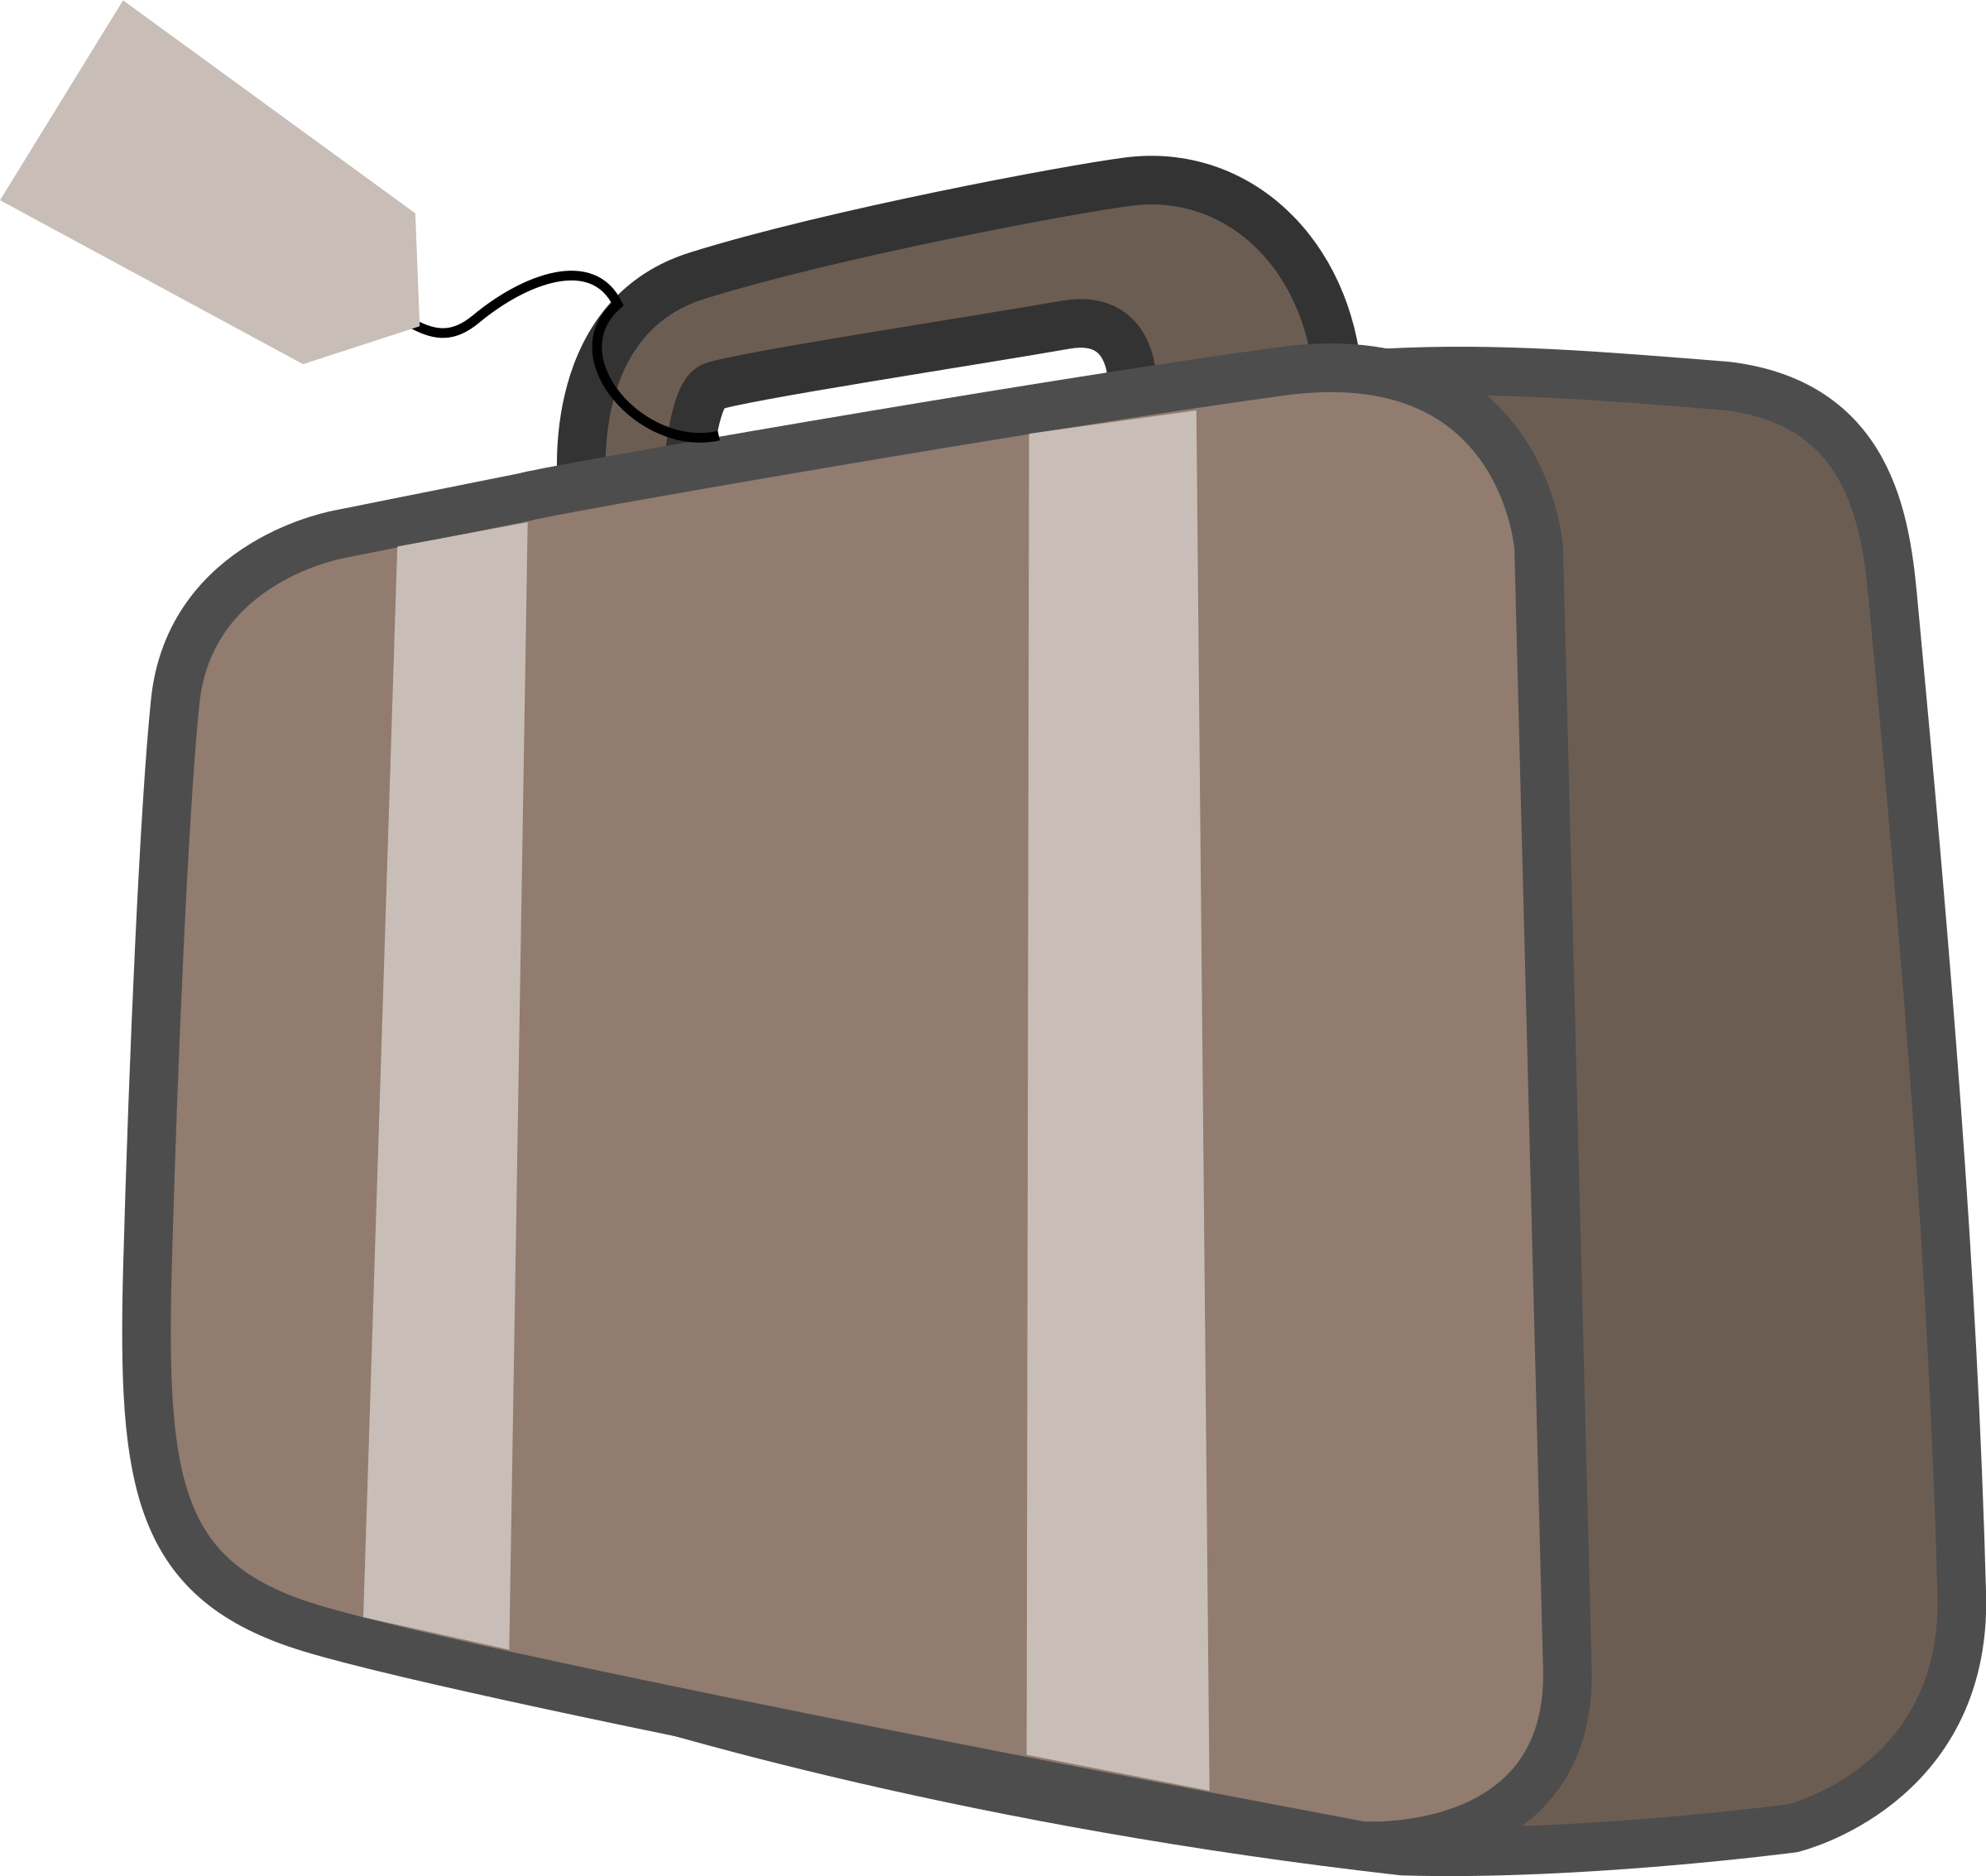 Luggage clipart briefcase. Bag